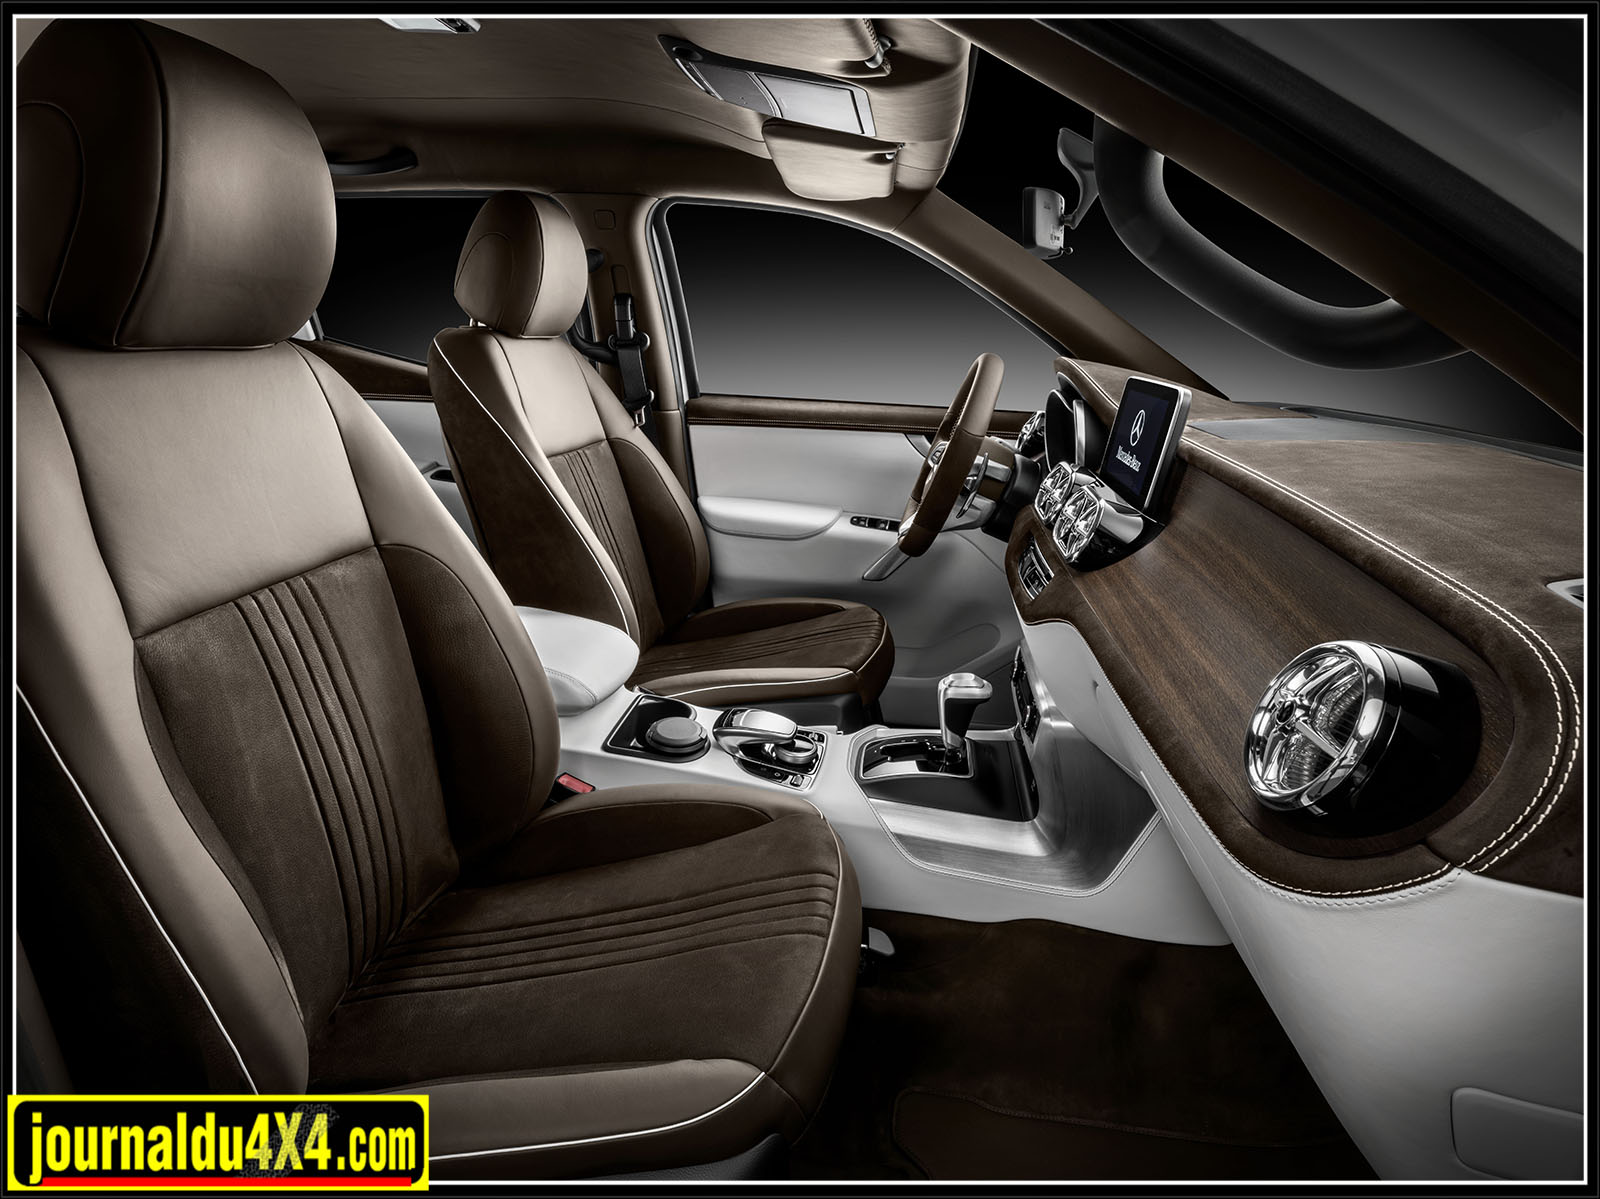 interieur-mercedes-classe-x-pick-up-001.jpg